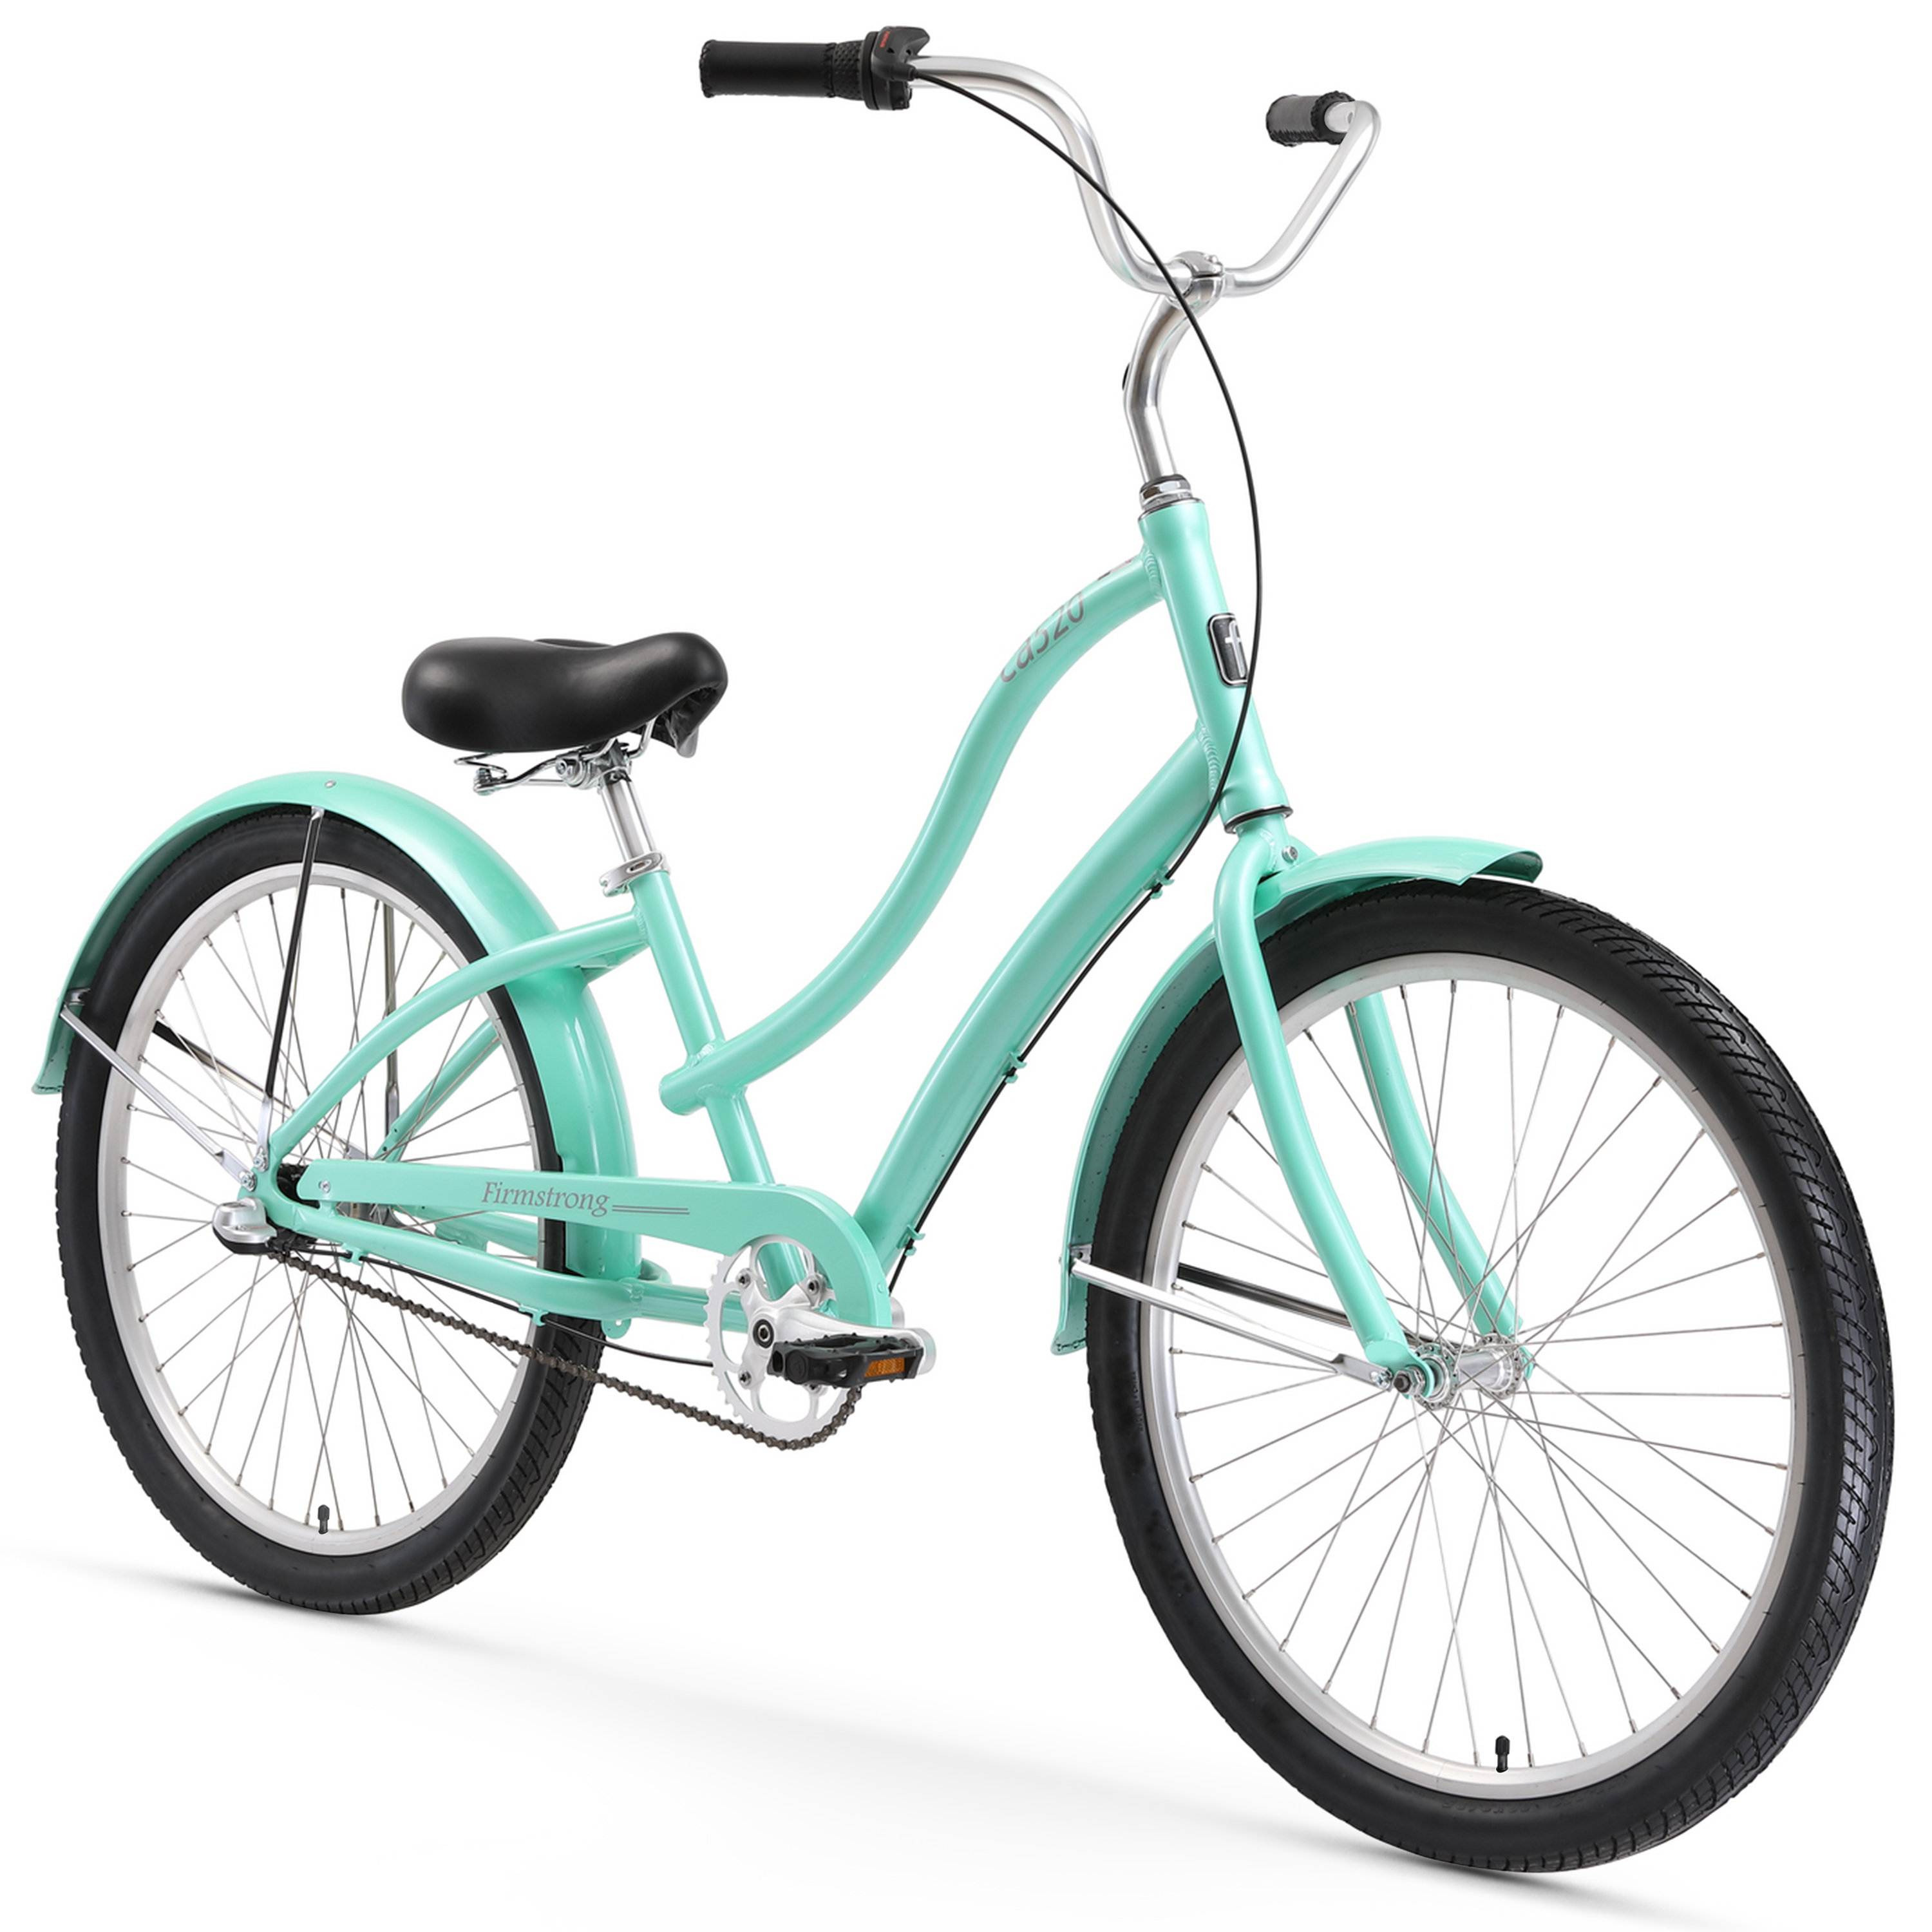 "Firmstrong CA-524, 26"", Women's, Three Speed, Mint Green"